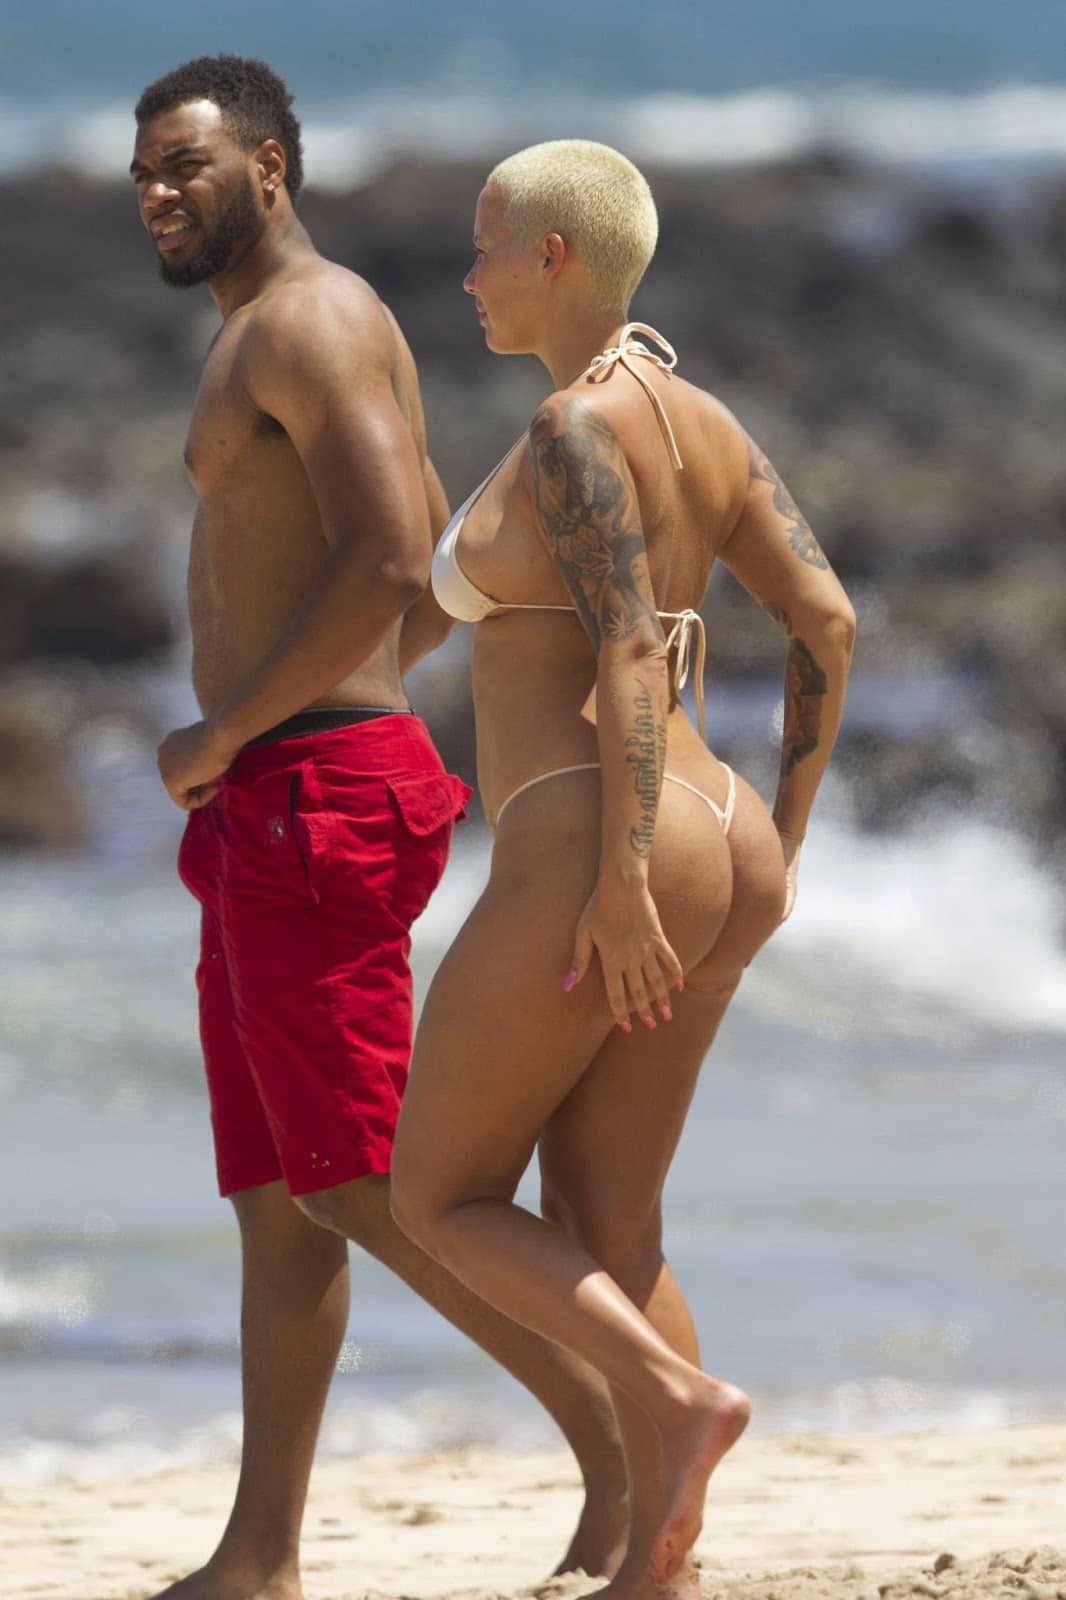 amber rose booty nude